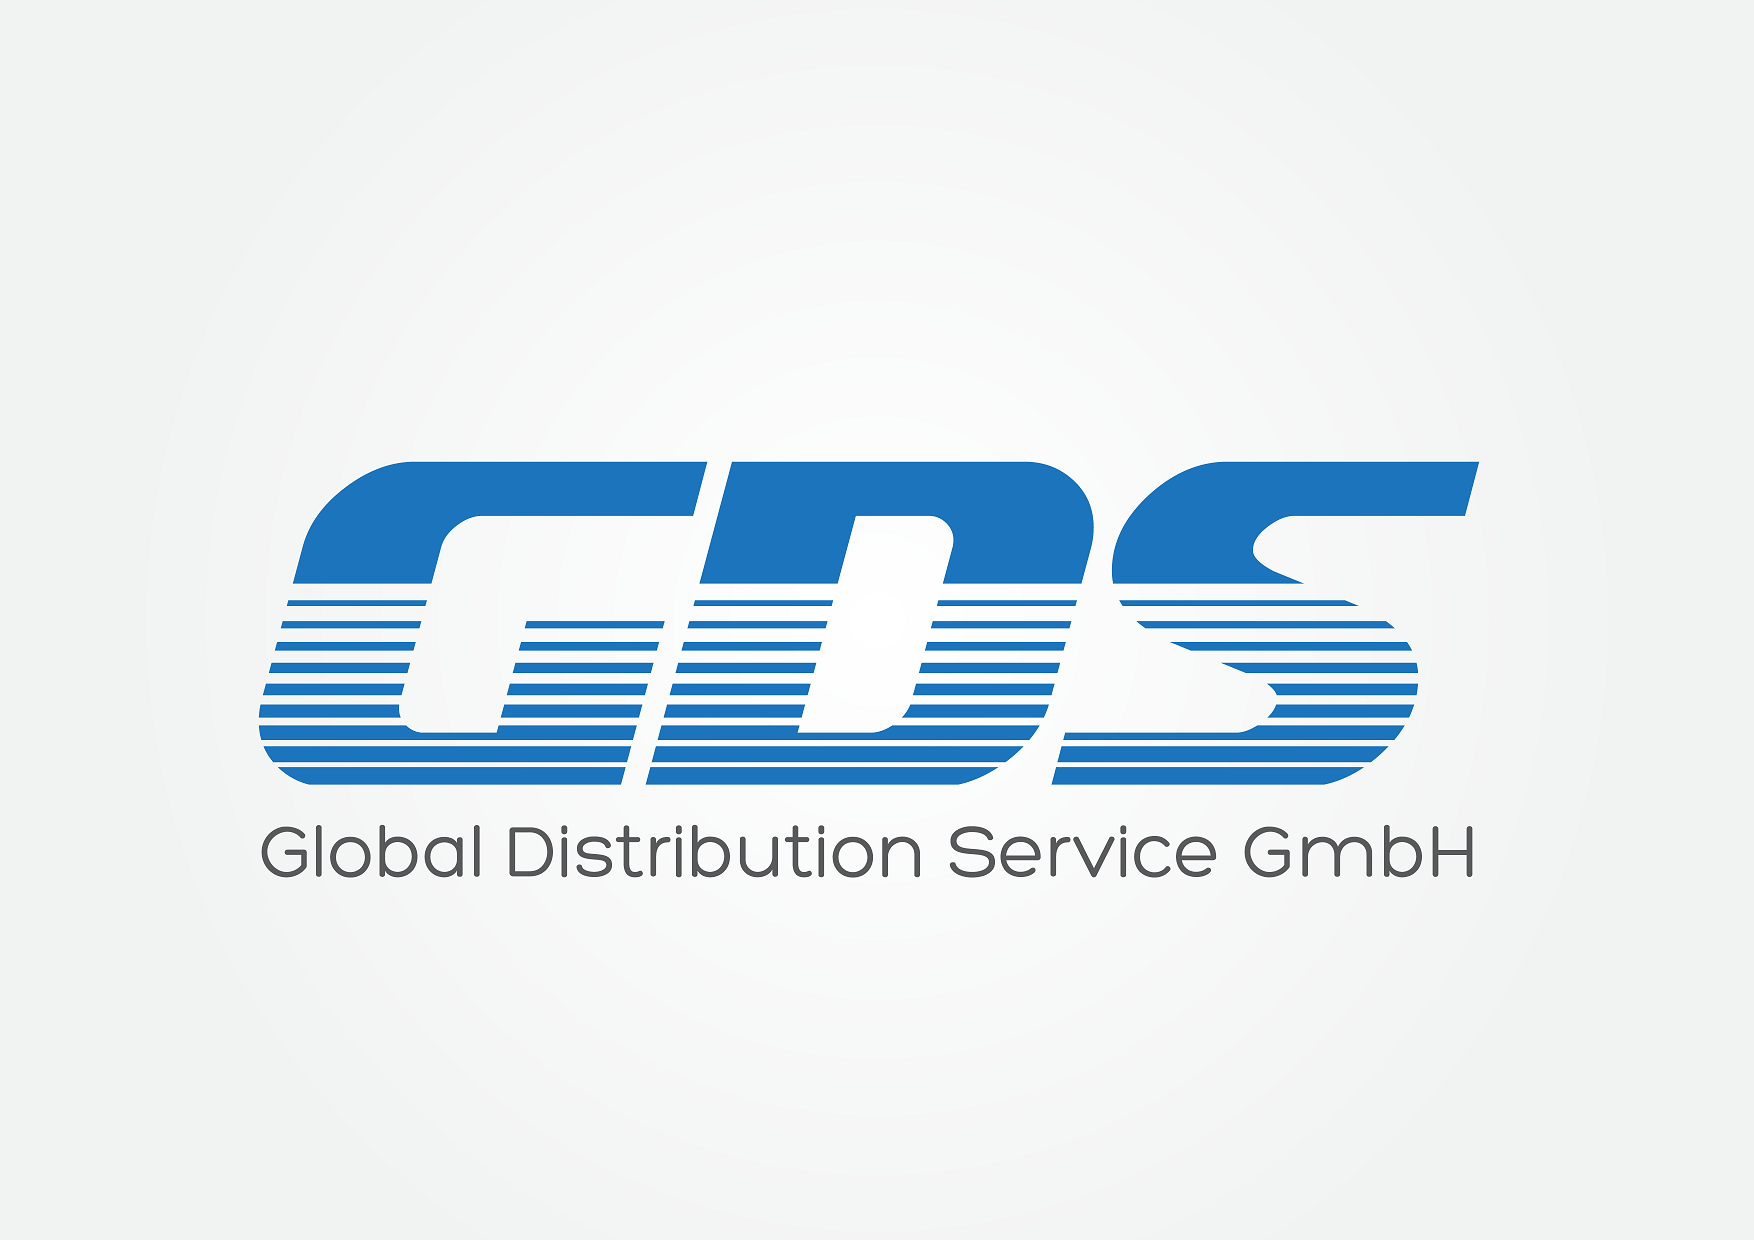 Gds global distribution service gmbh company logo font for Global design company